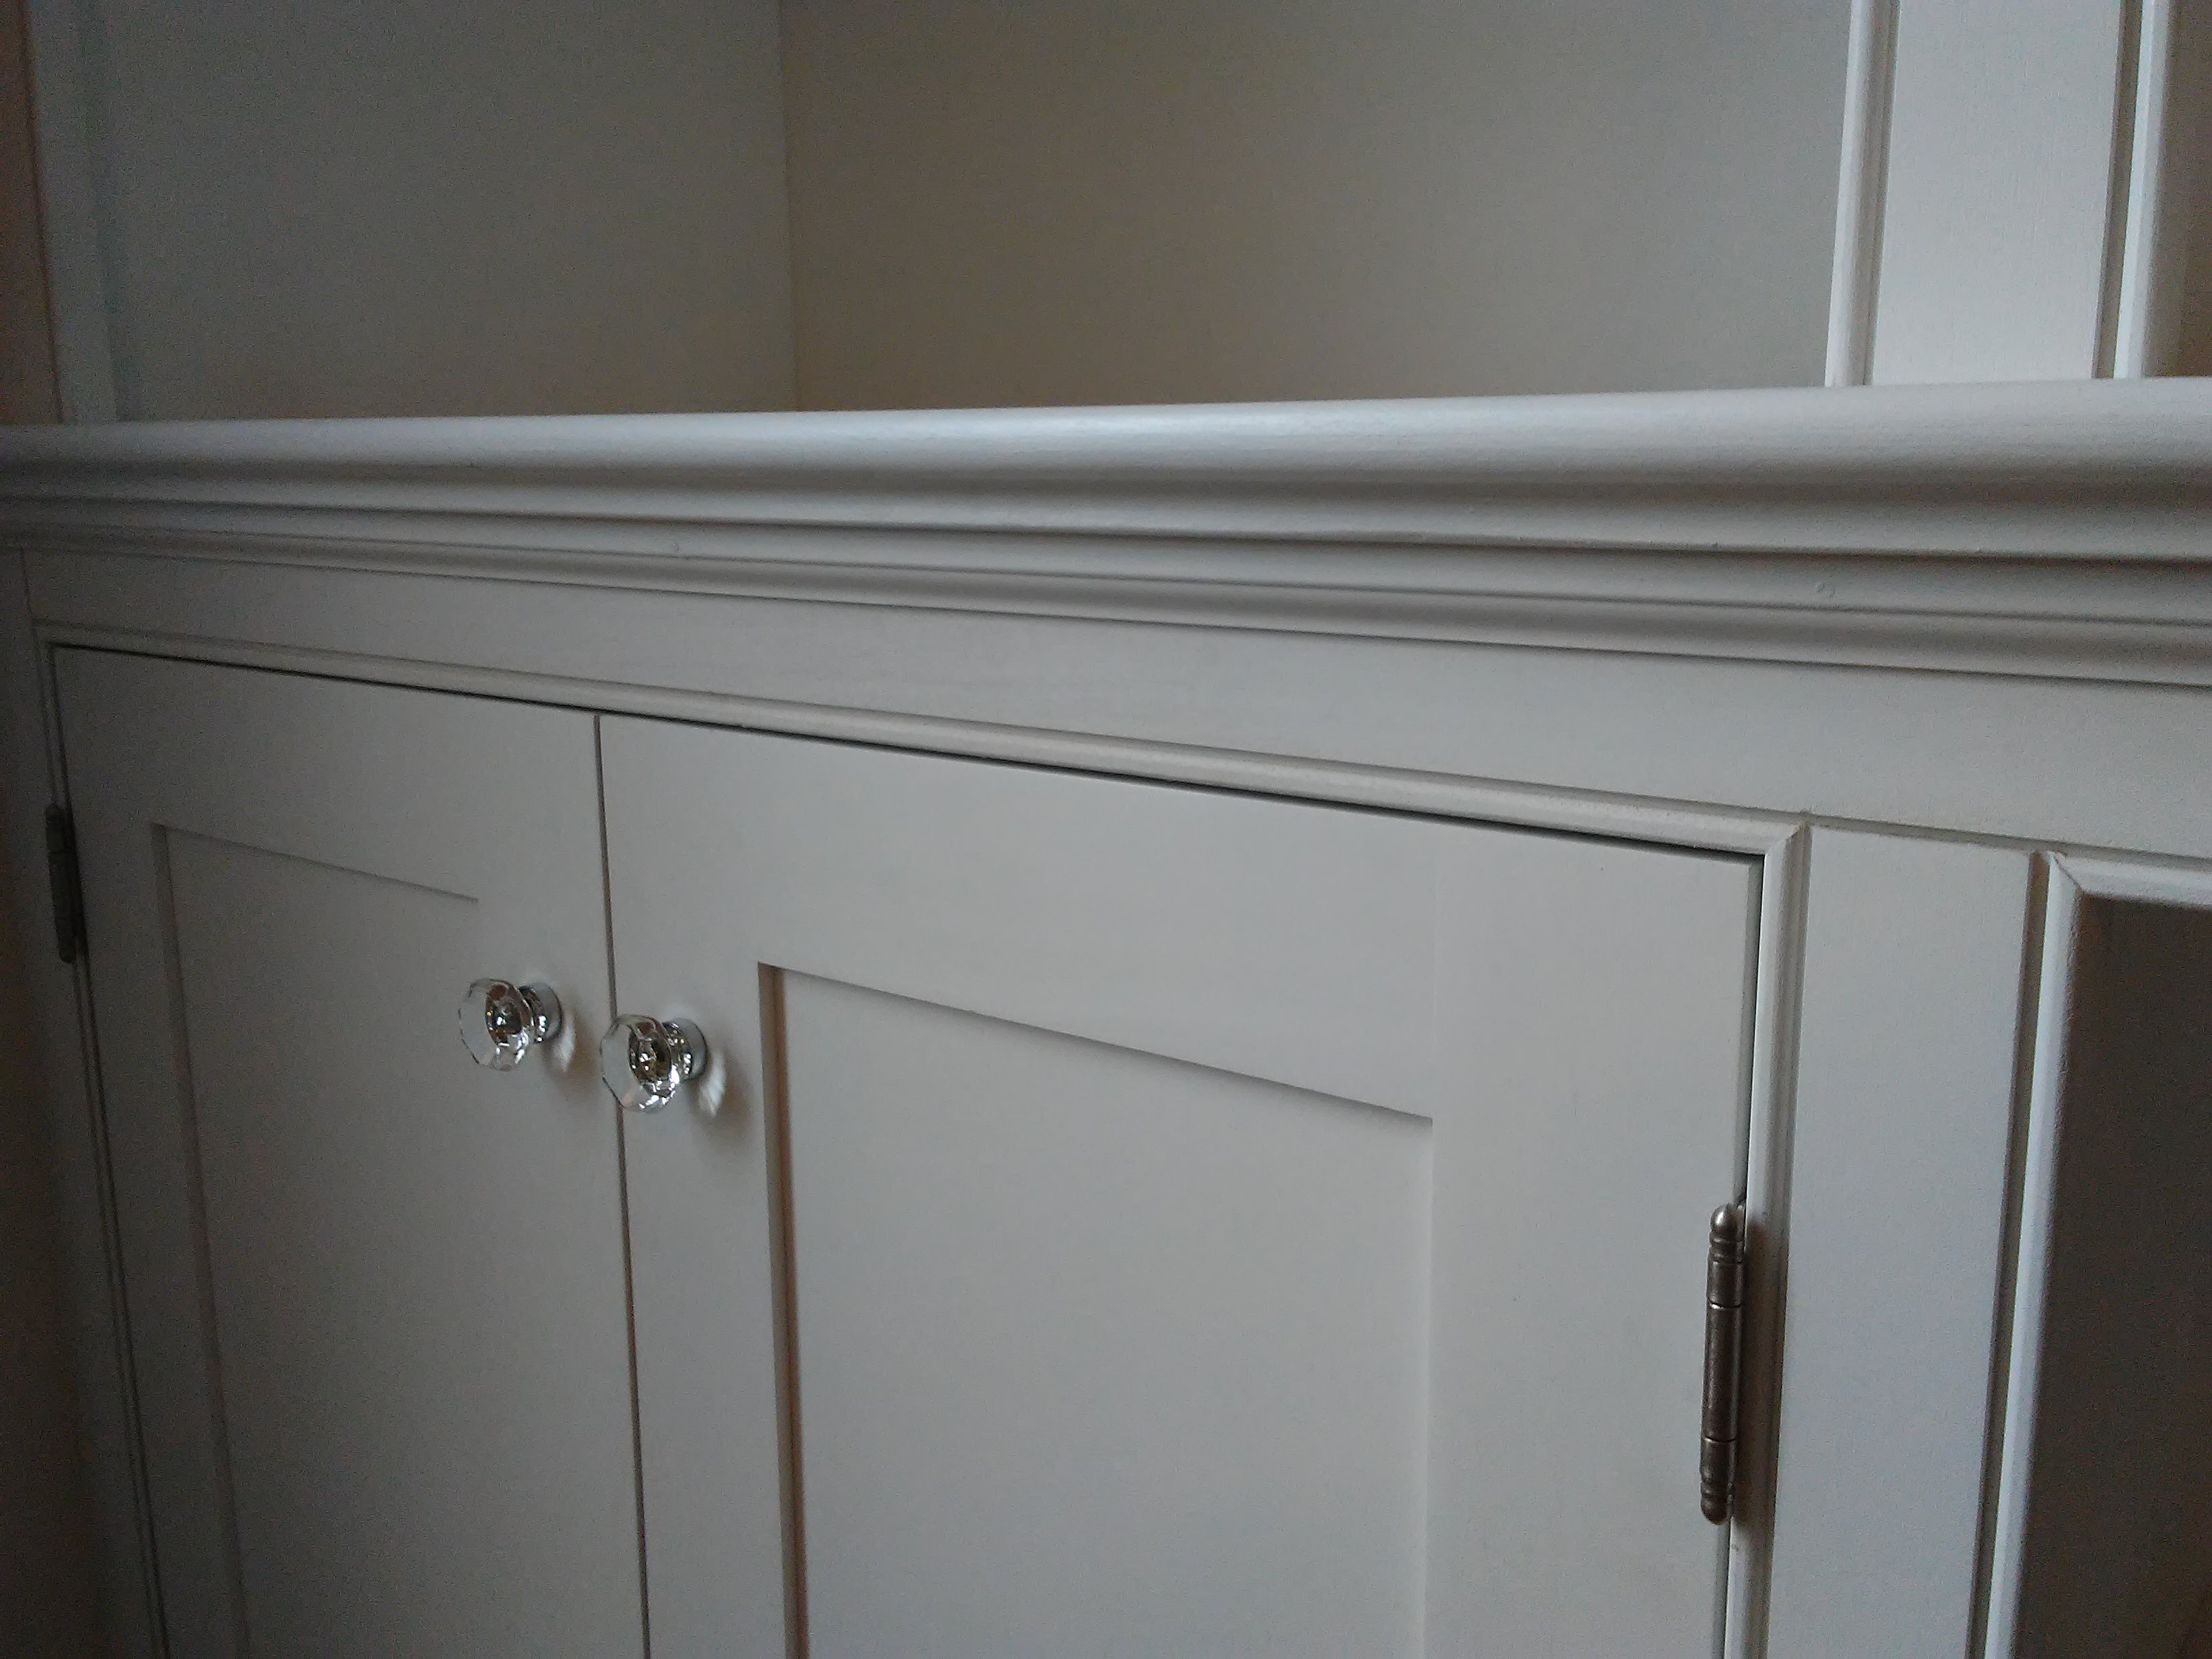 Detail of Knobs